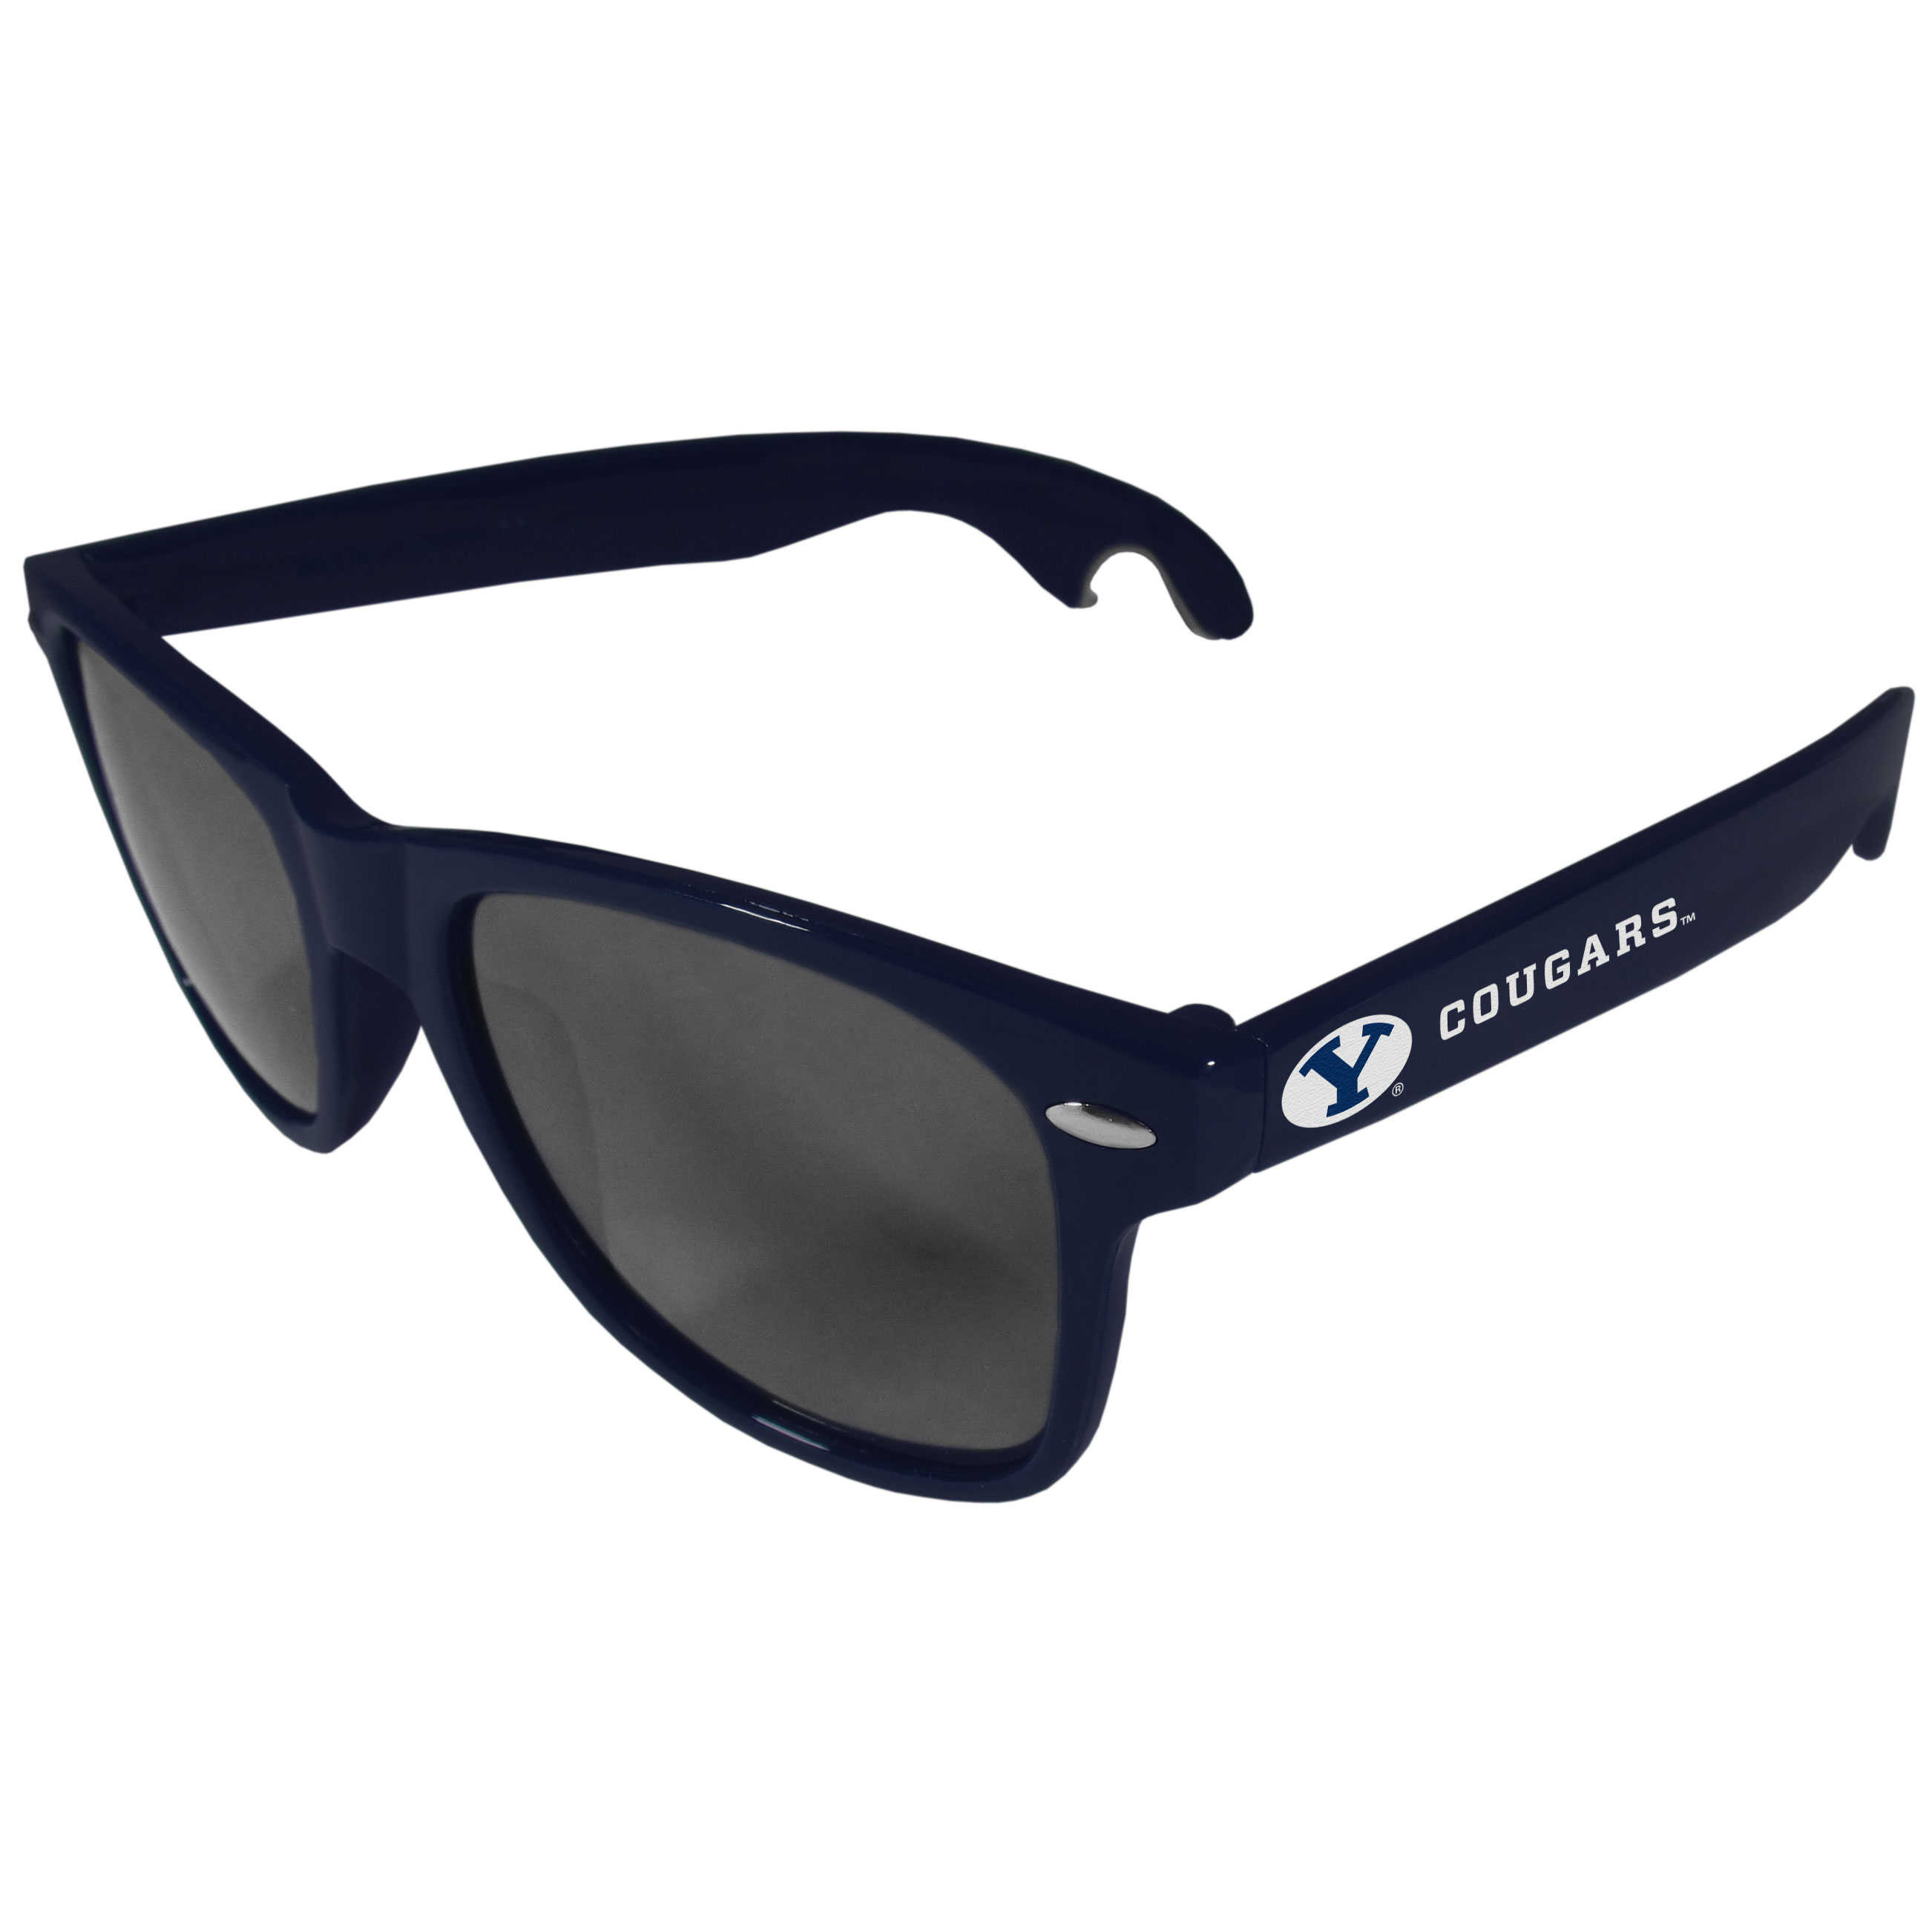 BYU Cougars Beachfarer Bottle Opener Sunglasses, Dark Blue - Seriously, these sunglasses open bottles! Keep the party going with these amazing BYU Cougars bottle opener sunglasses. The stylish retro frames feature team designs on the arms and functional bottle openers on the end of the arms. Whether you are at the beach or having a backyard BBQ on game day, these shades will keep your eyes protected with 100% UVA/UVB protection and keep you hydrated with the handy bottle opener arms.